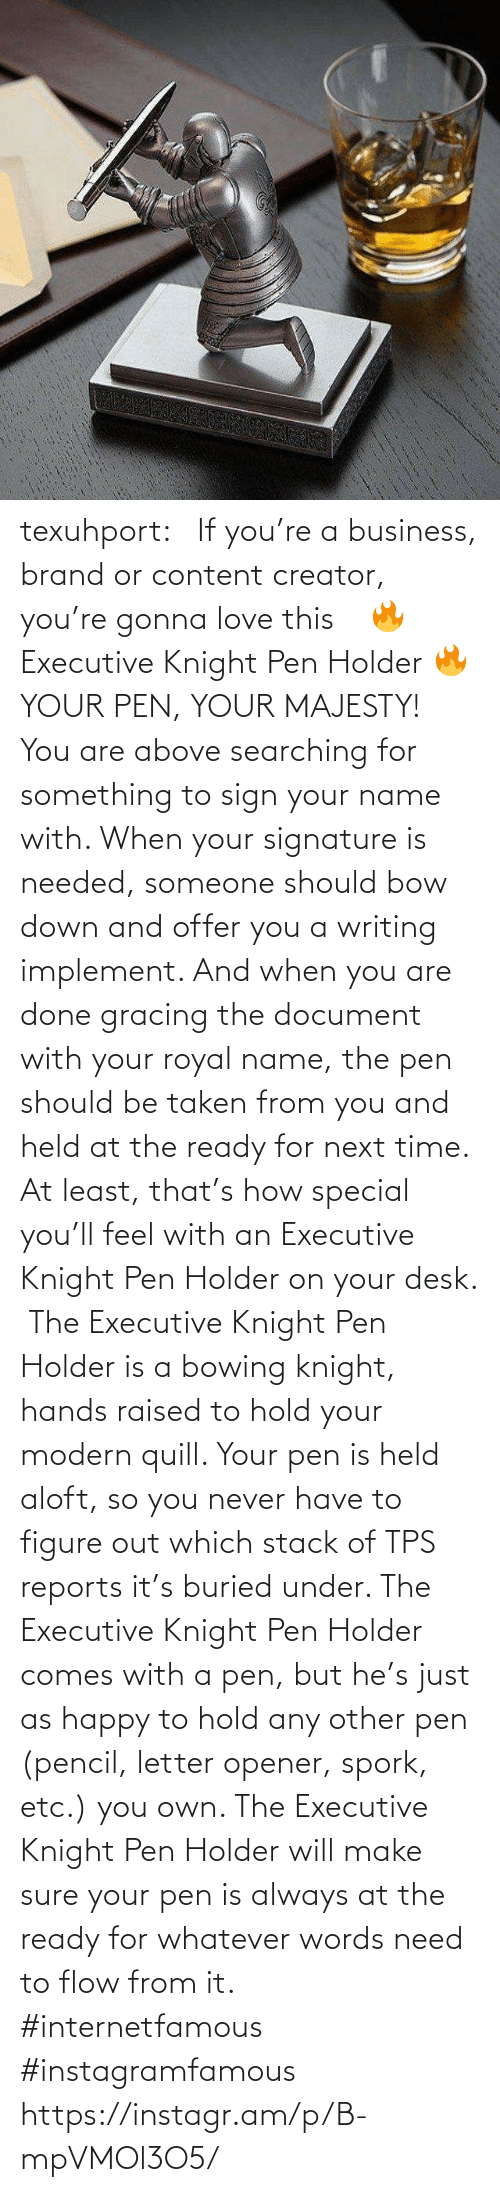 etc: texuhport:⎆ If you're a business, brand or content creator, you're gonna love this ⎆⁣ 🔥 Executive Knight Pen Holder 🔥⁣ YOUR PEN, YOUR MAJESTY!⁣ ⁣ You are above searching for something to sign your name with. When your signature is needed, someone should bow down and offer you a writing implement. And when you are done gracing the document with your royal name, the pen should be taken from you and held at the ready for next time. At least, that's how special you'll feel with an Executive Knight Pen Holder on your desk.⁣ ⁣ The Executive Knight Pen Holder is a bowing knight, hands raised to hold your modern quill. Your pen is held aloft, so you never have to figure out which stack of TPS reports it's buried under. The Executive Knight Pen Holder comes with a pen, but he's just as happy to hold any other pen (pencil, letter opener, spork, etc.) you own. The Executive Knight Pen Holder will make sure your pen is always at the ready for whatever words need to flow from it.⁣ #internetfamous  #instagramfamous https://instagr.am/p/B-mpVMOl3O5/